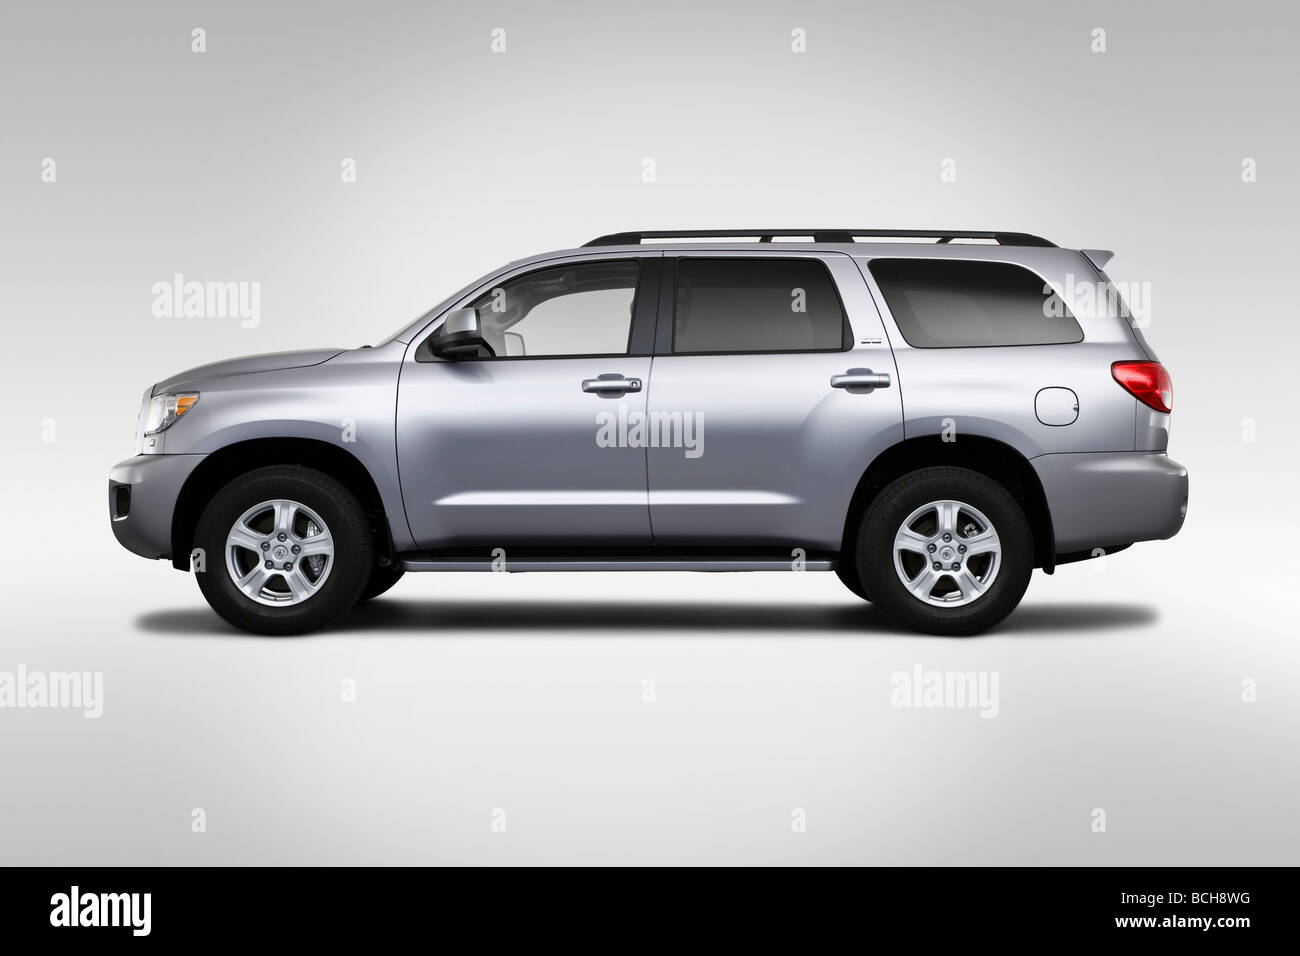 2010 toyota sequoia sr5 in silver drivers side profile stock photo 24966412 alamy. Black Bedroom Furniture Sets. Home Design Ideas